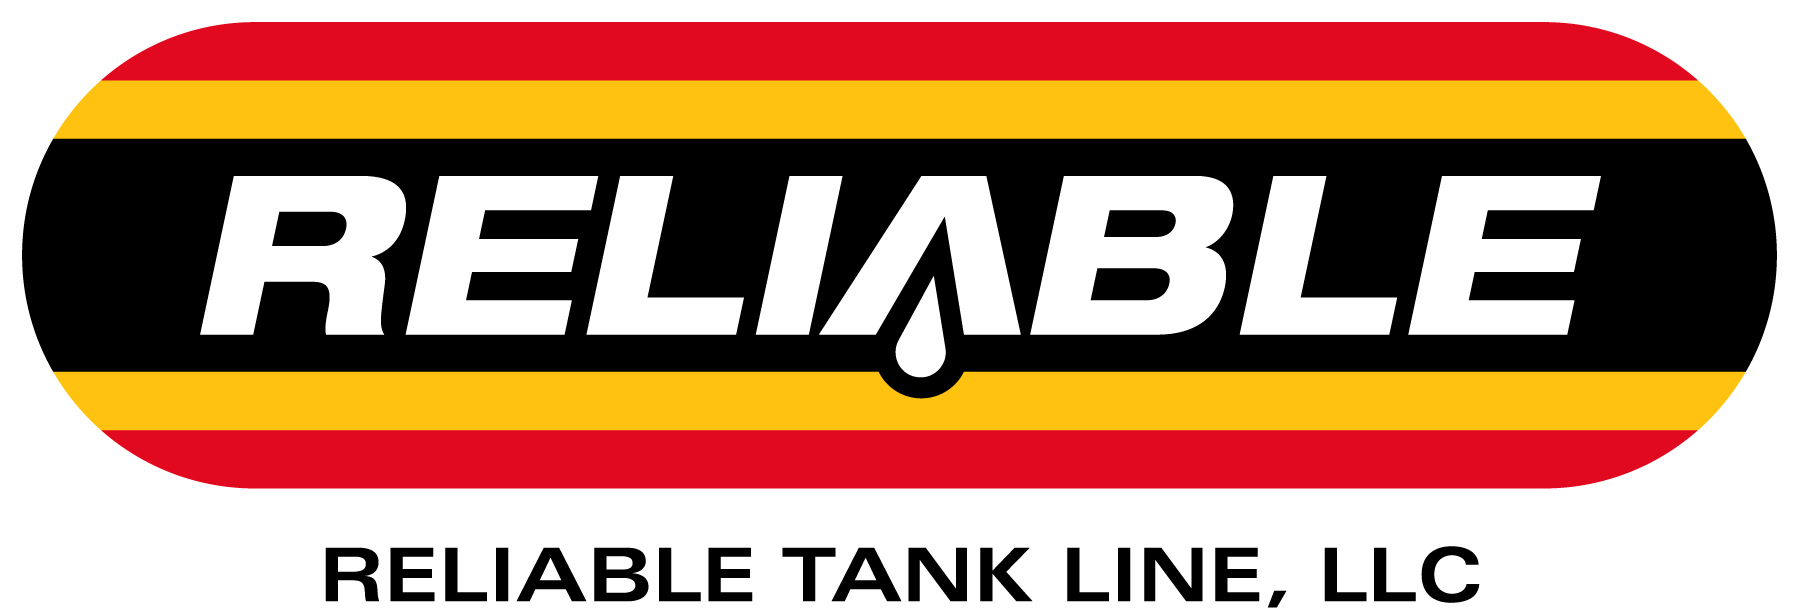 Reliable Tank Line